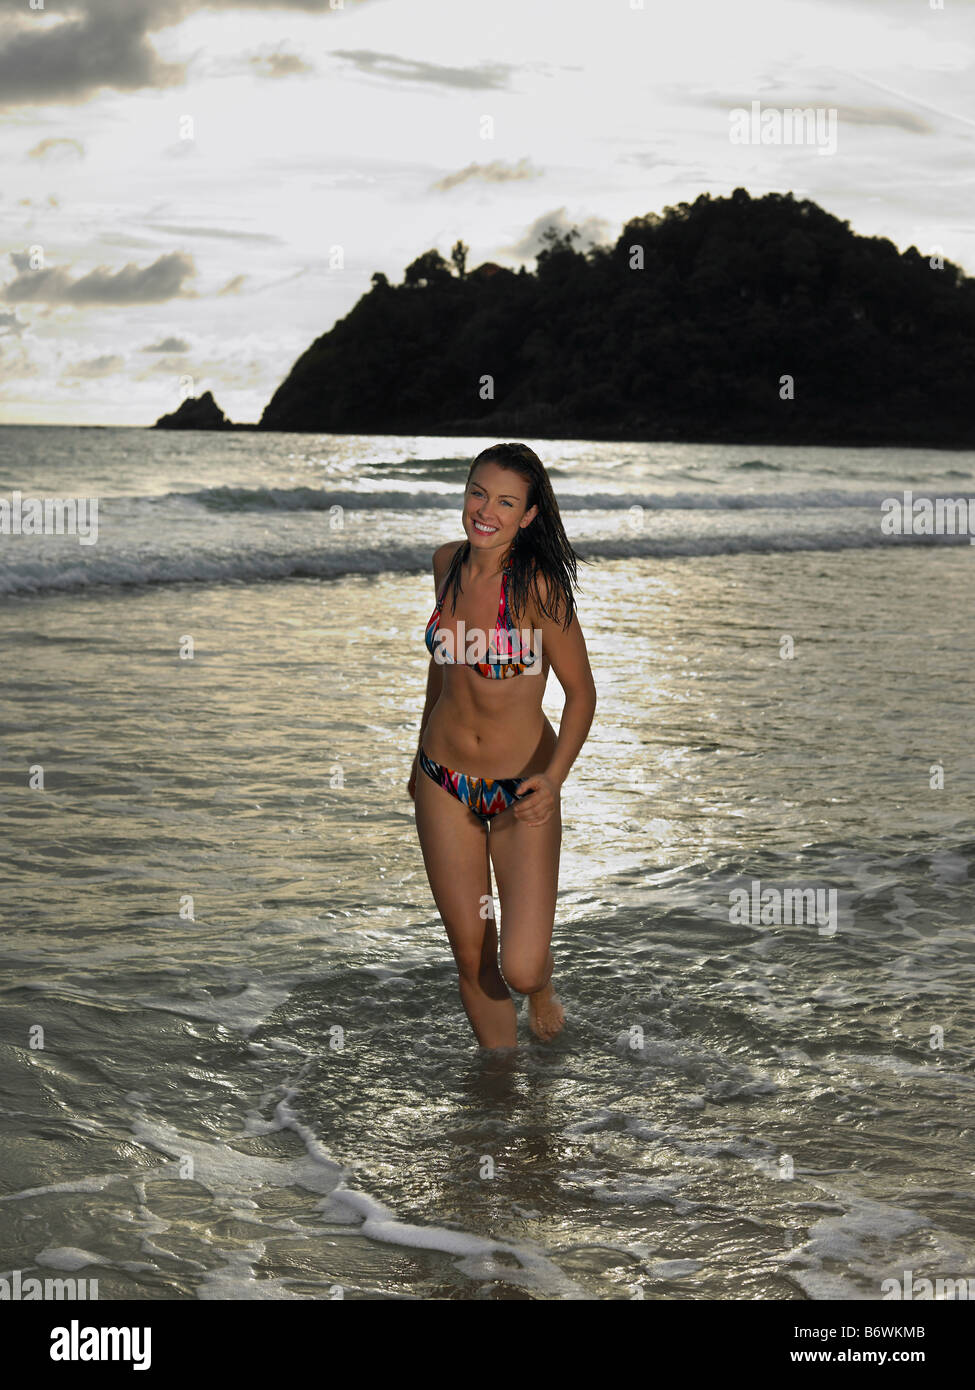 Young Woman Wading in Ocean at Sunset - Stock Image